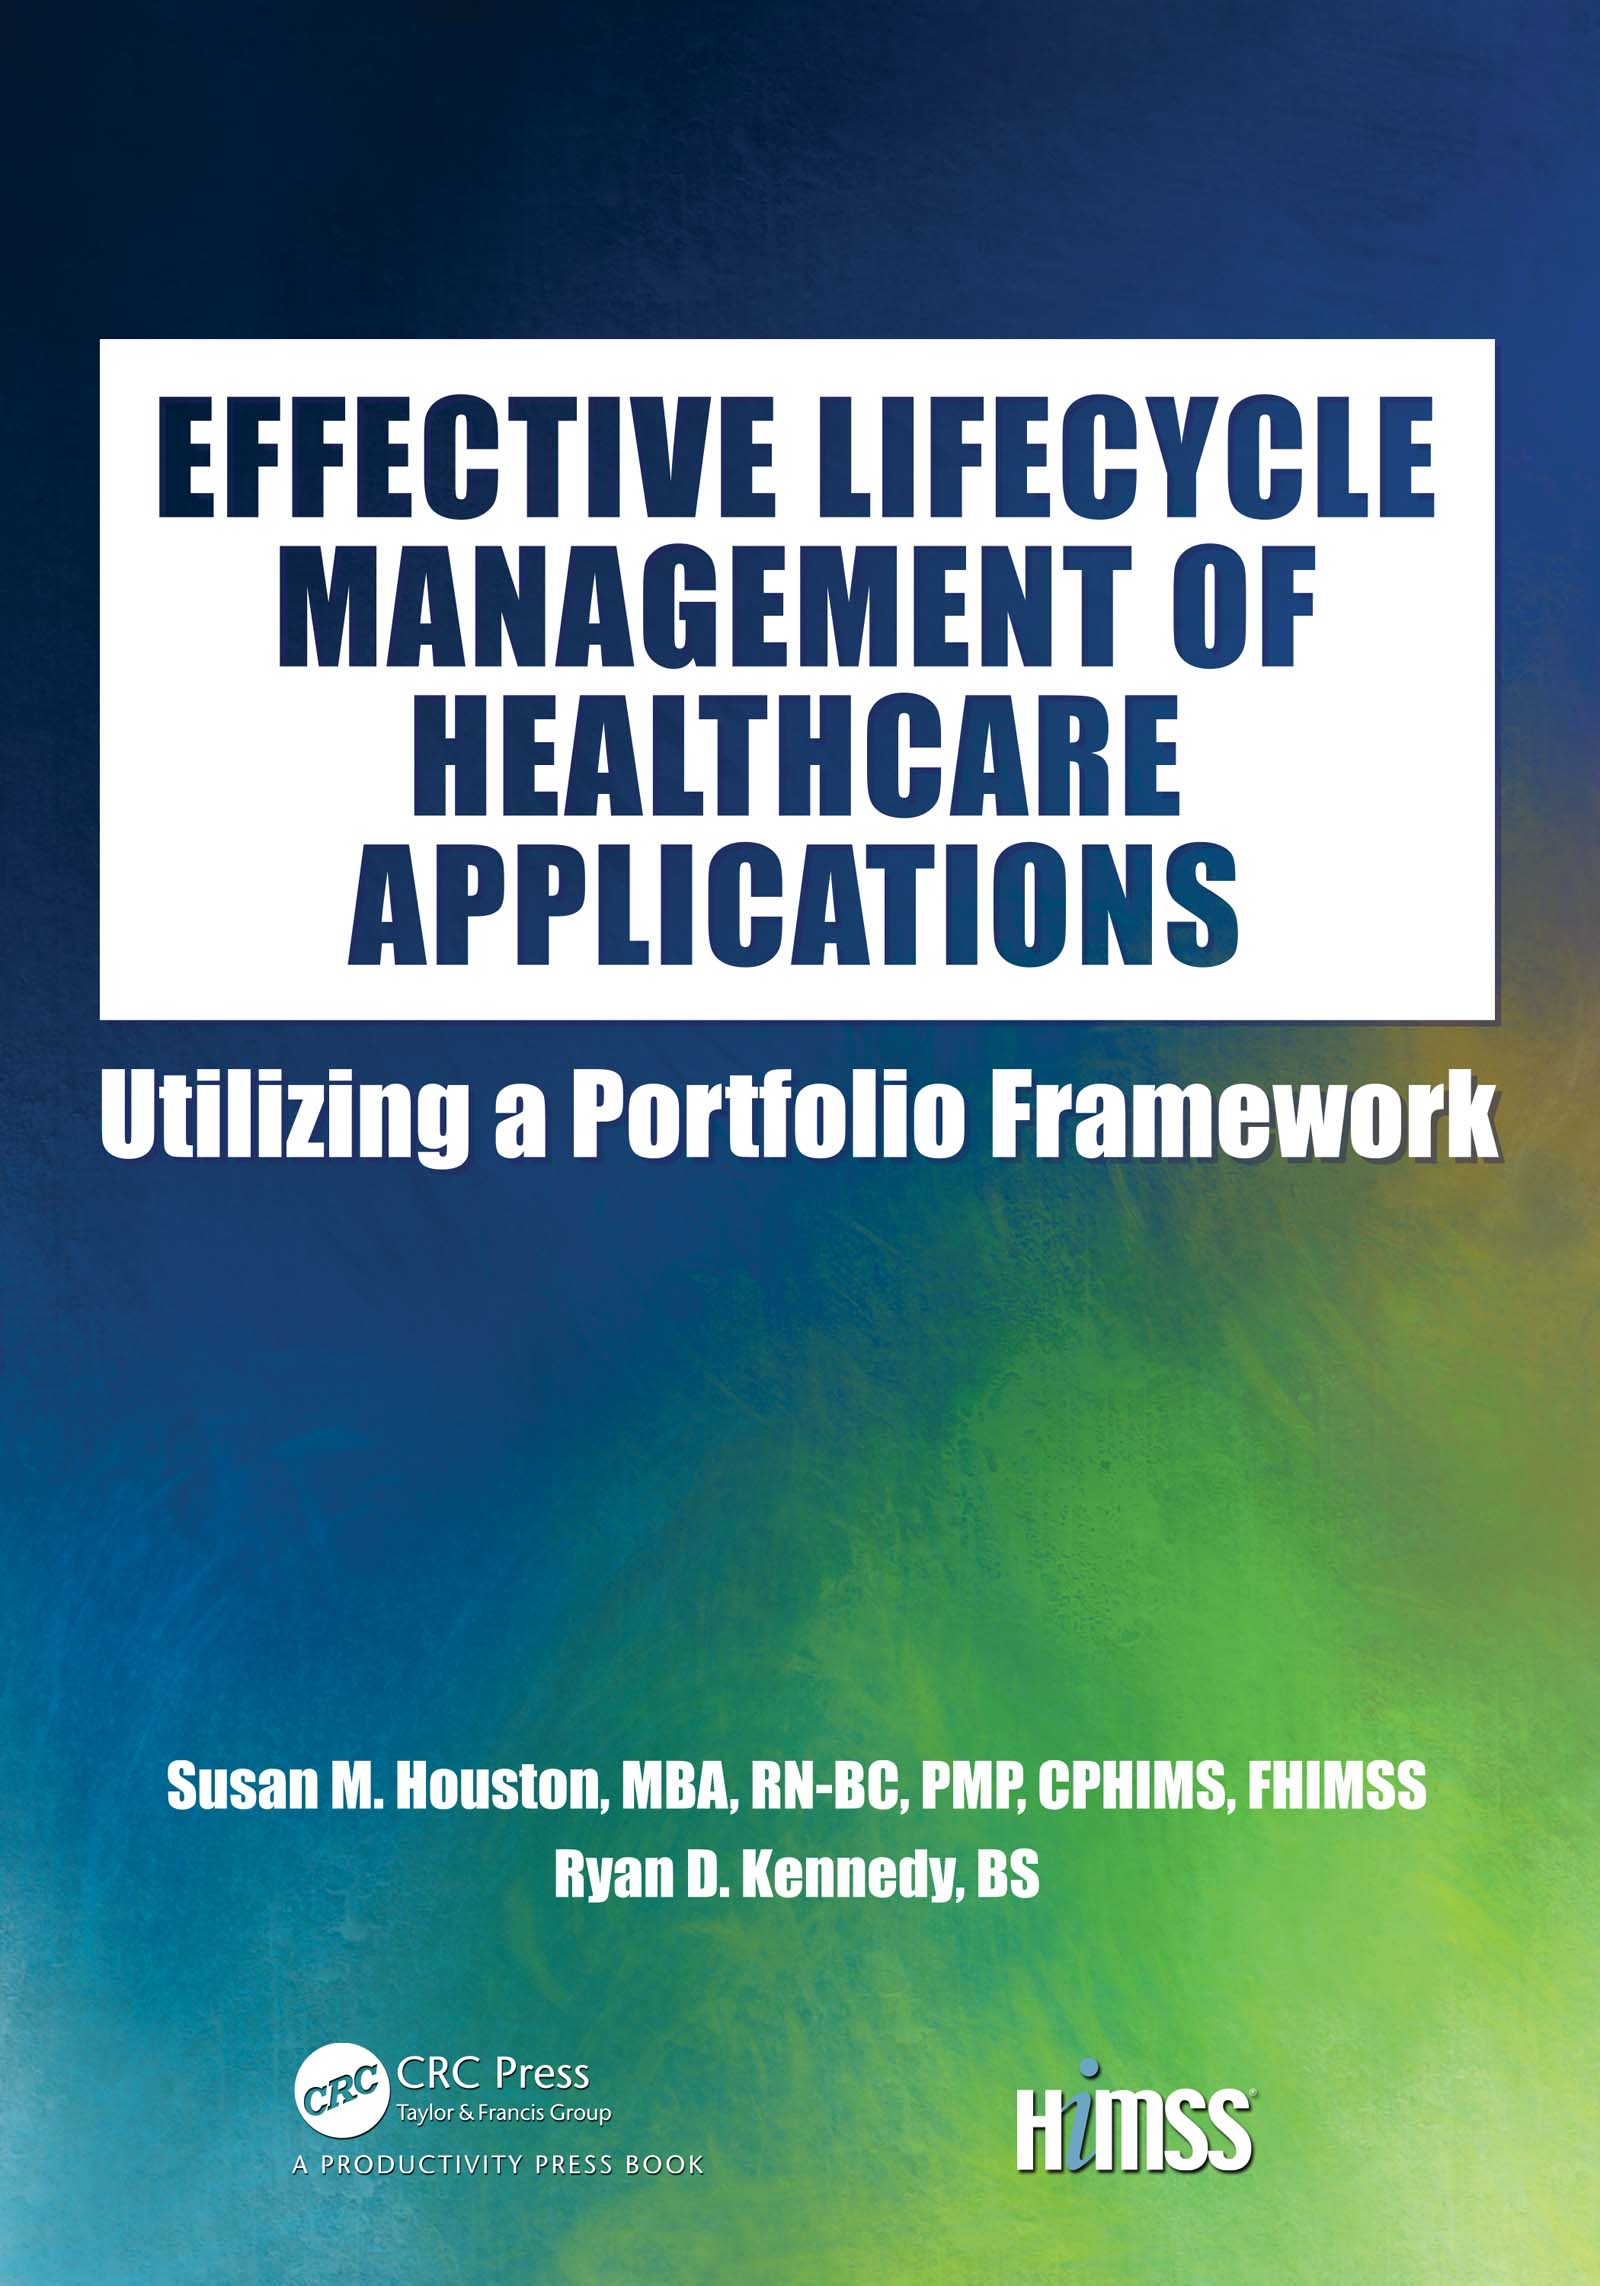 Effective Lifecycle Management of Healthcare Applications: Utilizing a Portfolio Framework book cover